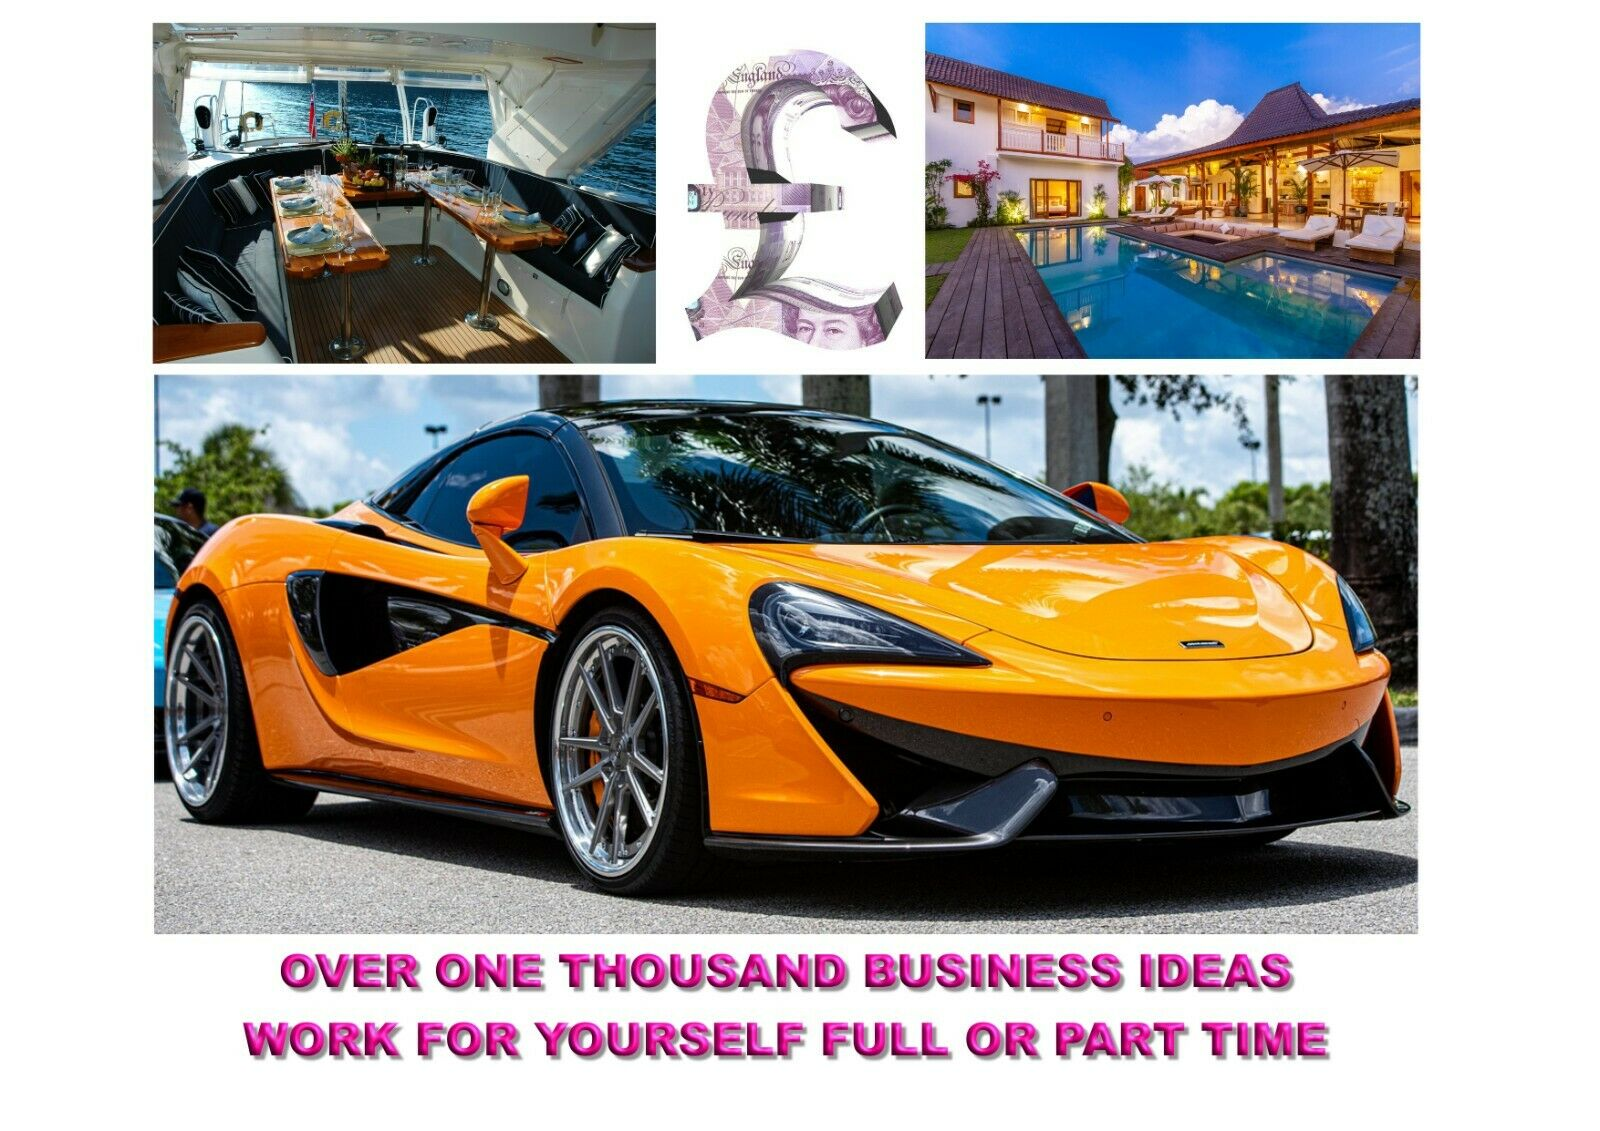 Business Ideas (One of the best & biggest collections available)